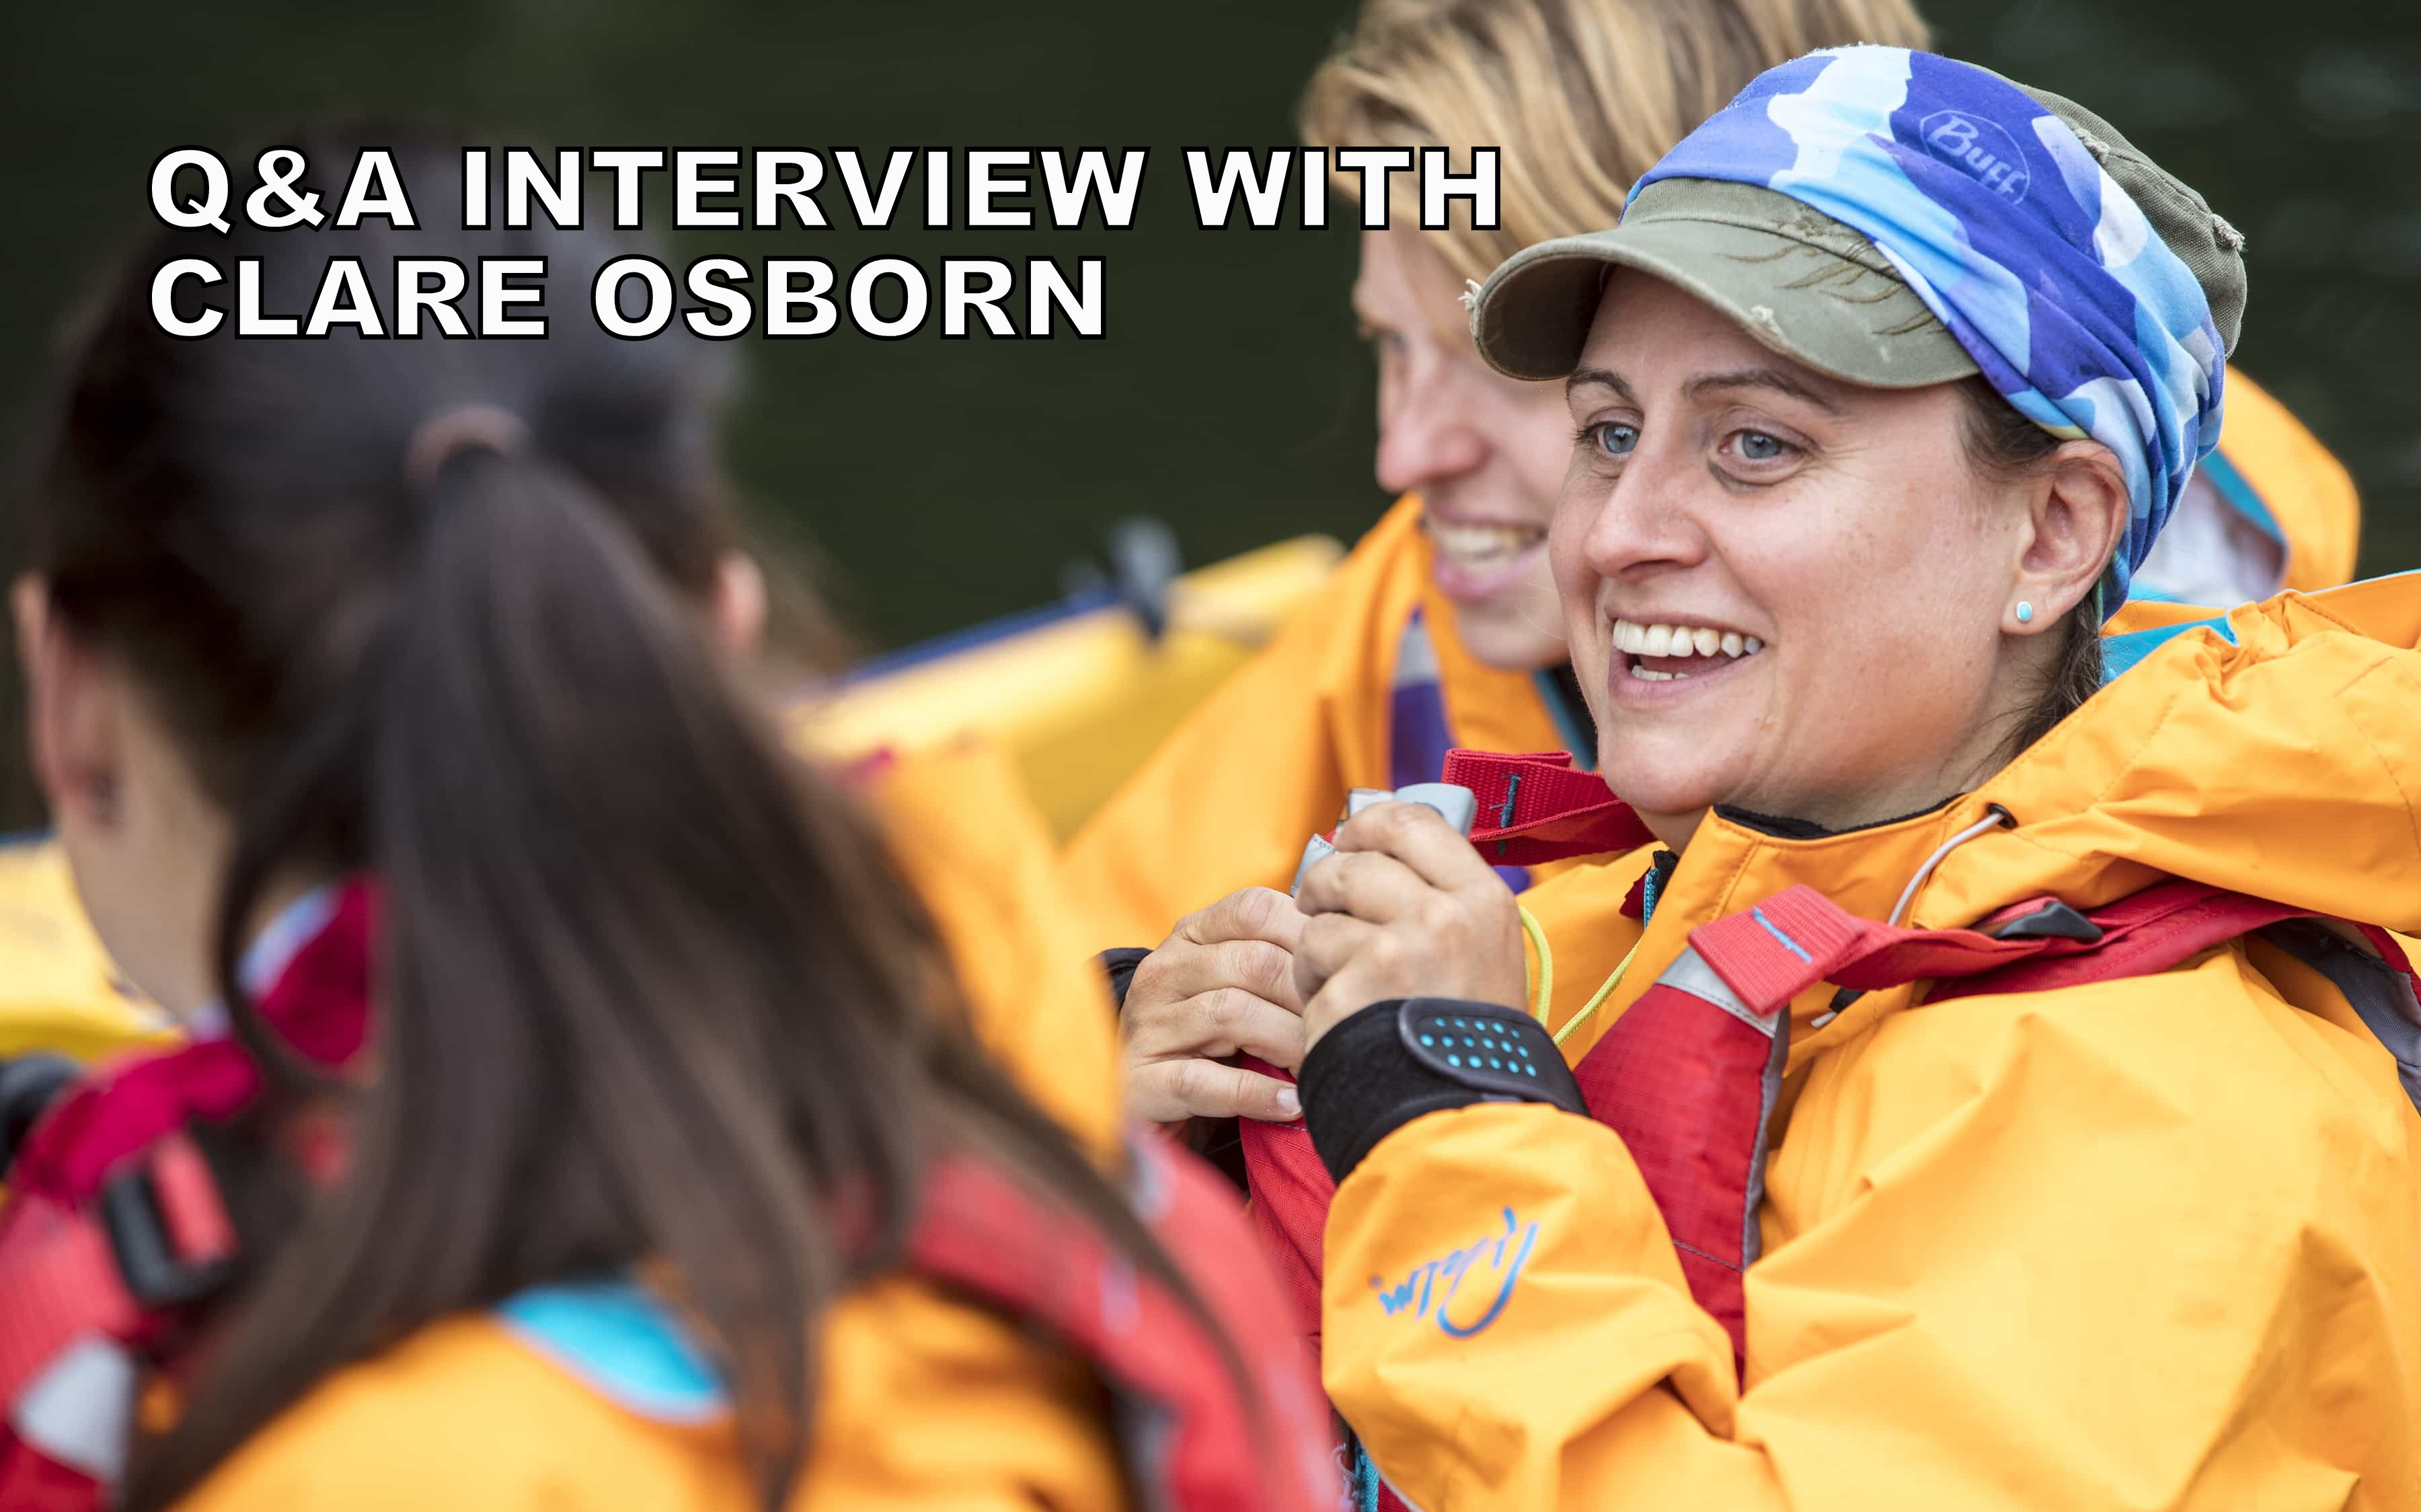 Q&A interview with Clare Osborn